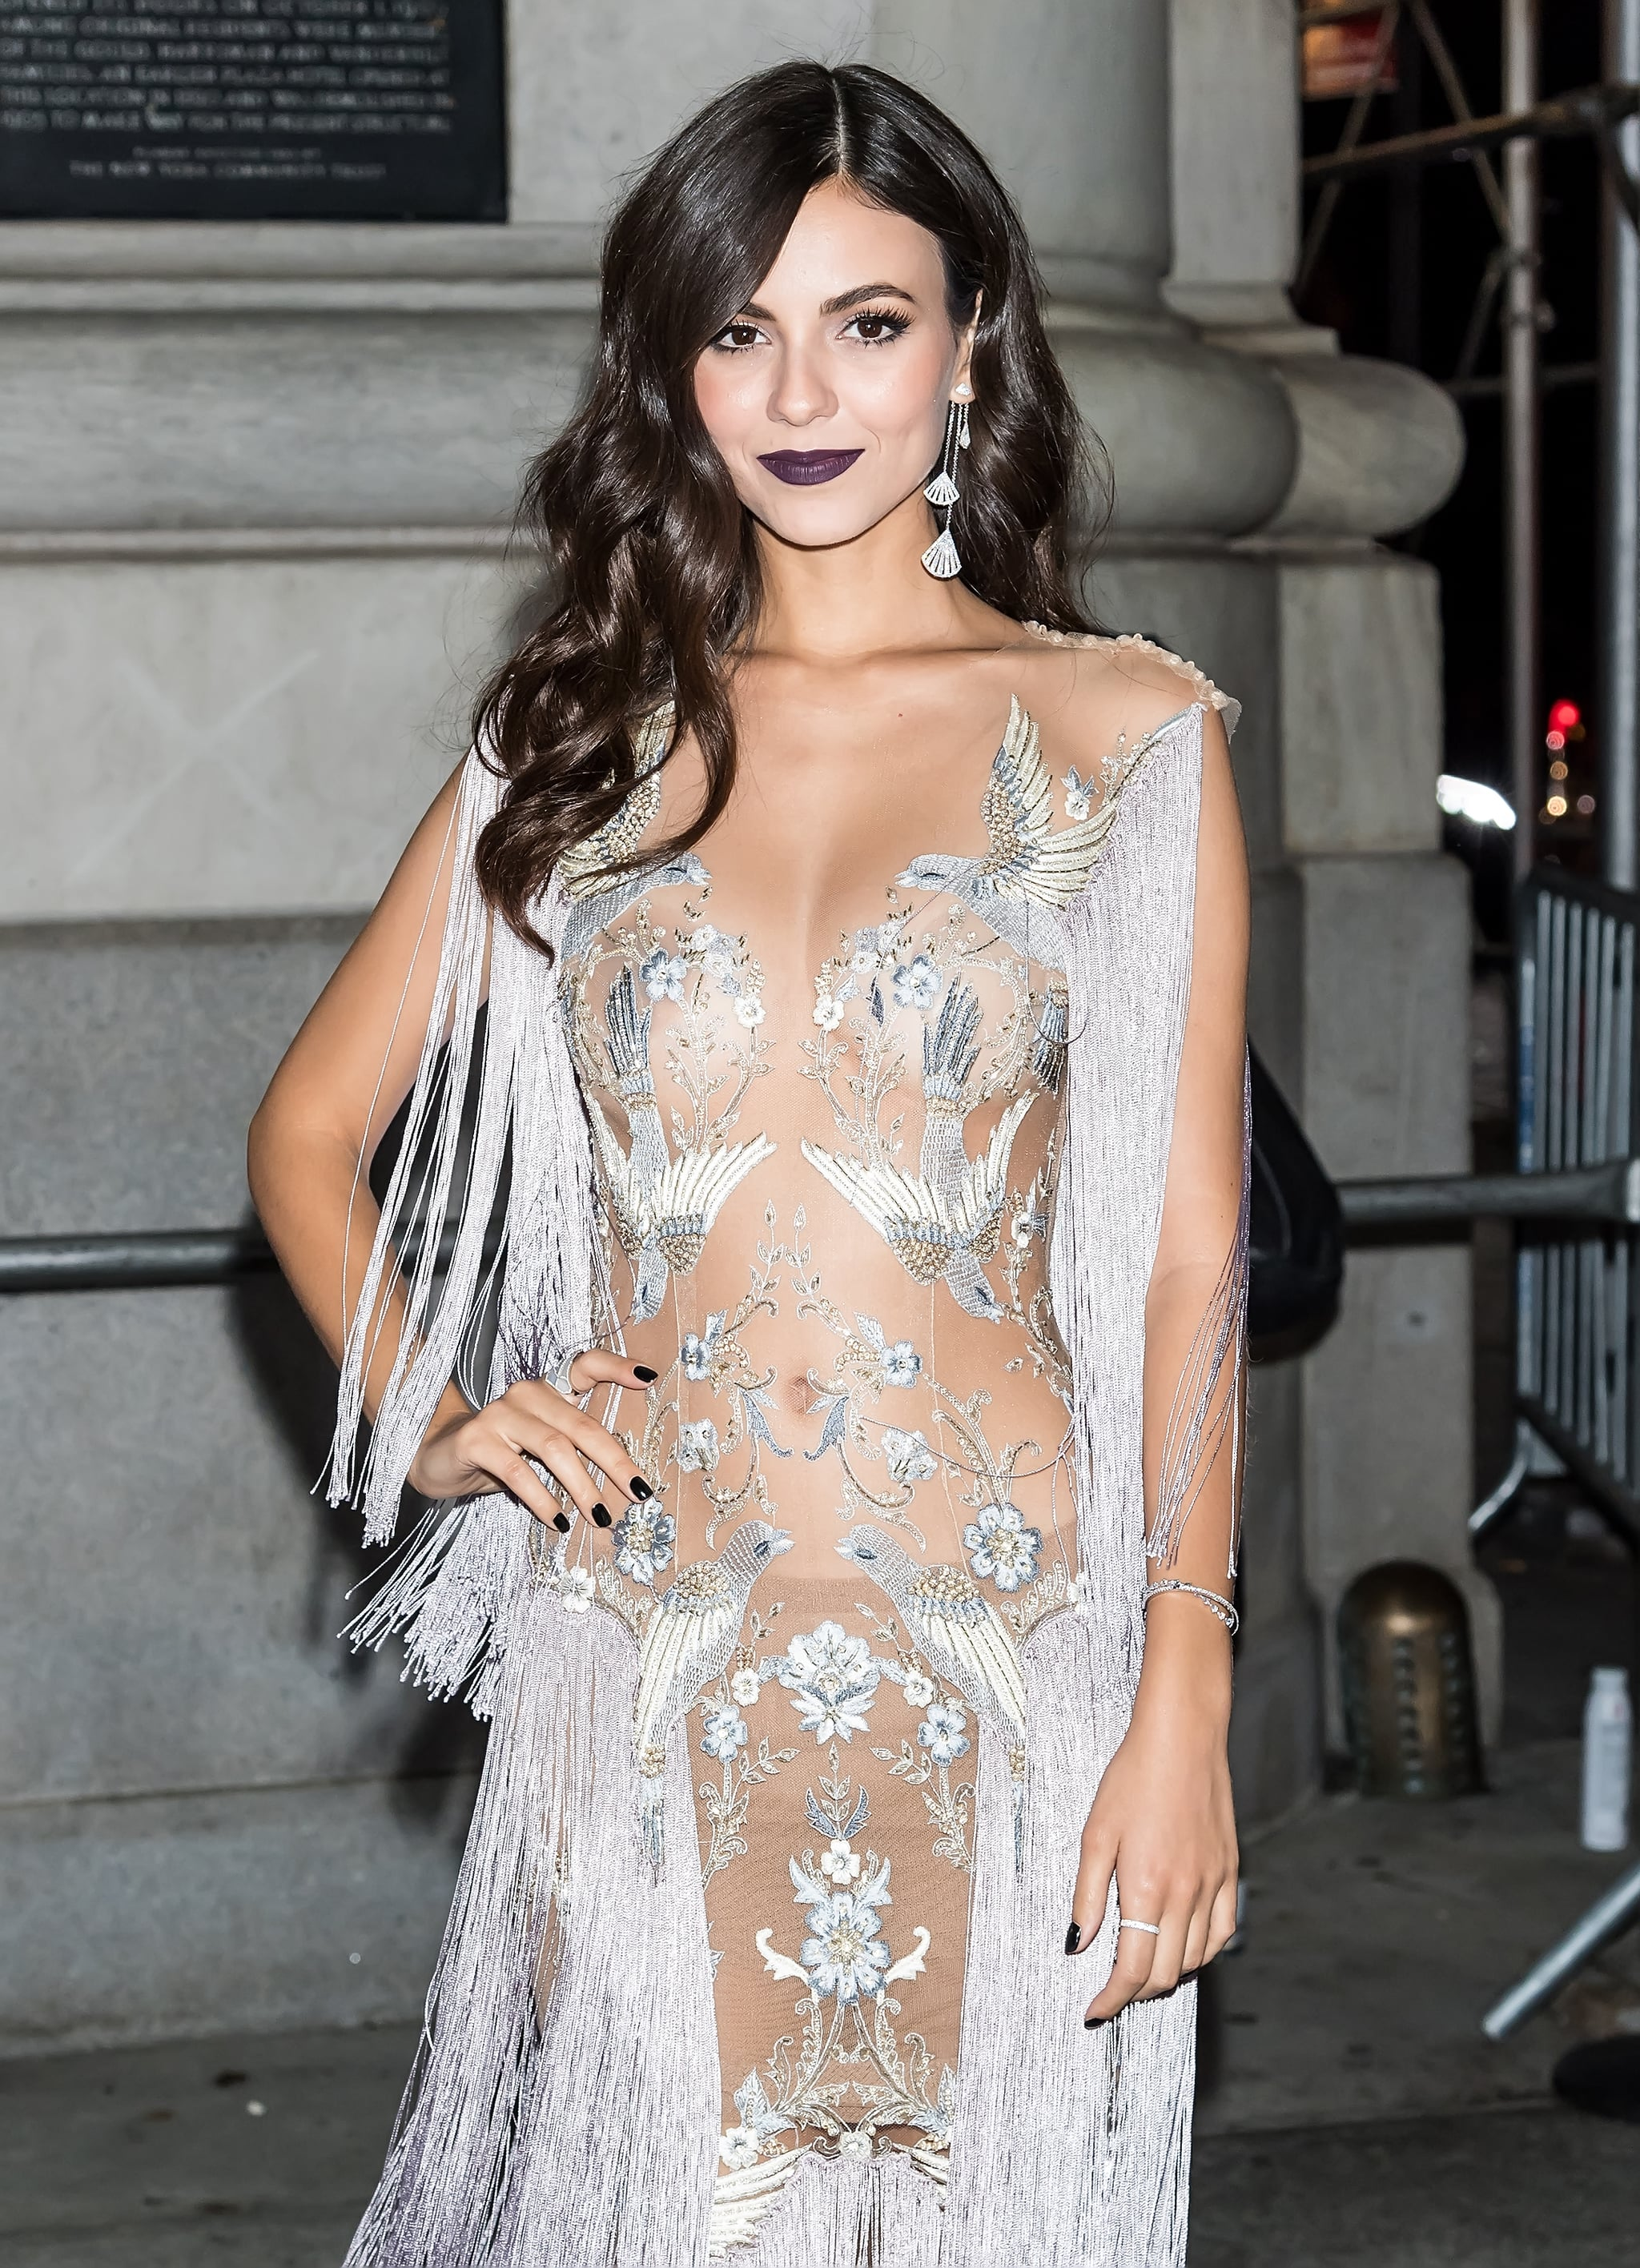 Victoria Justice Sexy Pictures photo 4